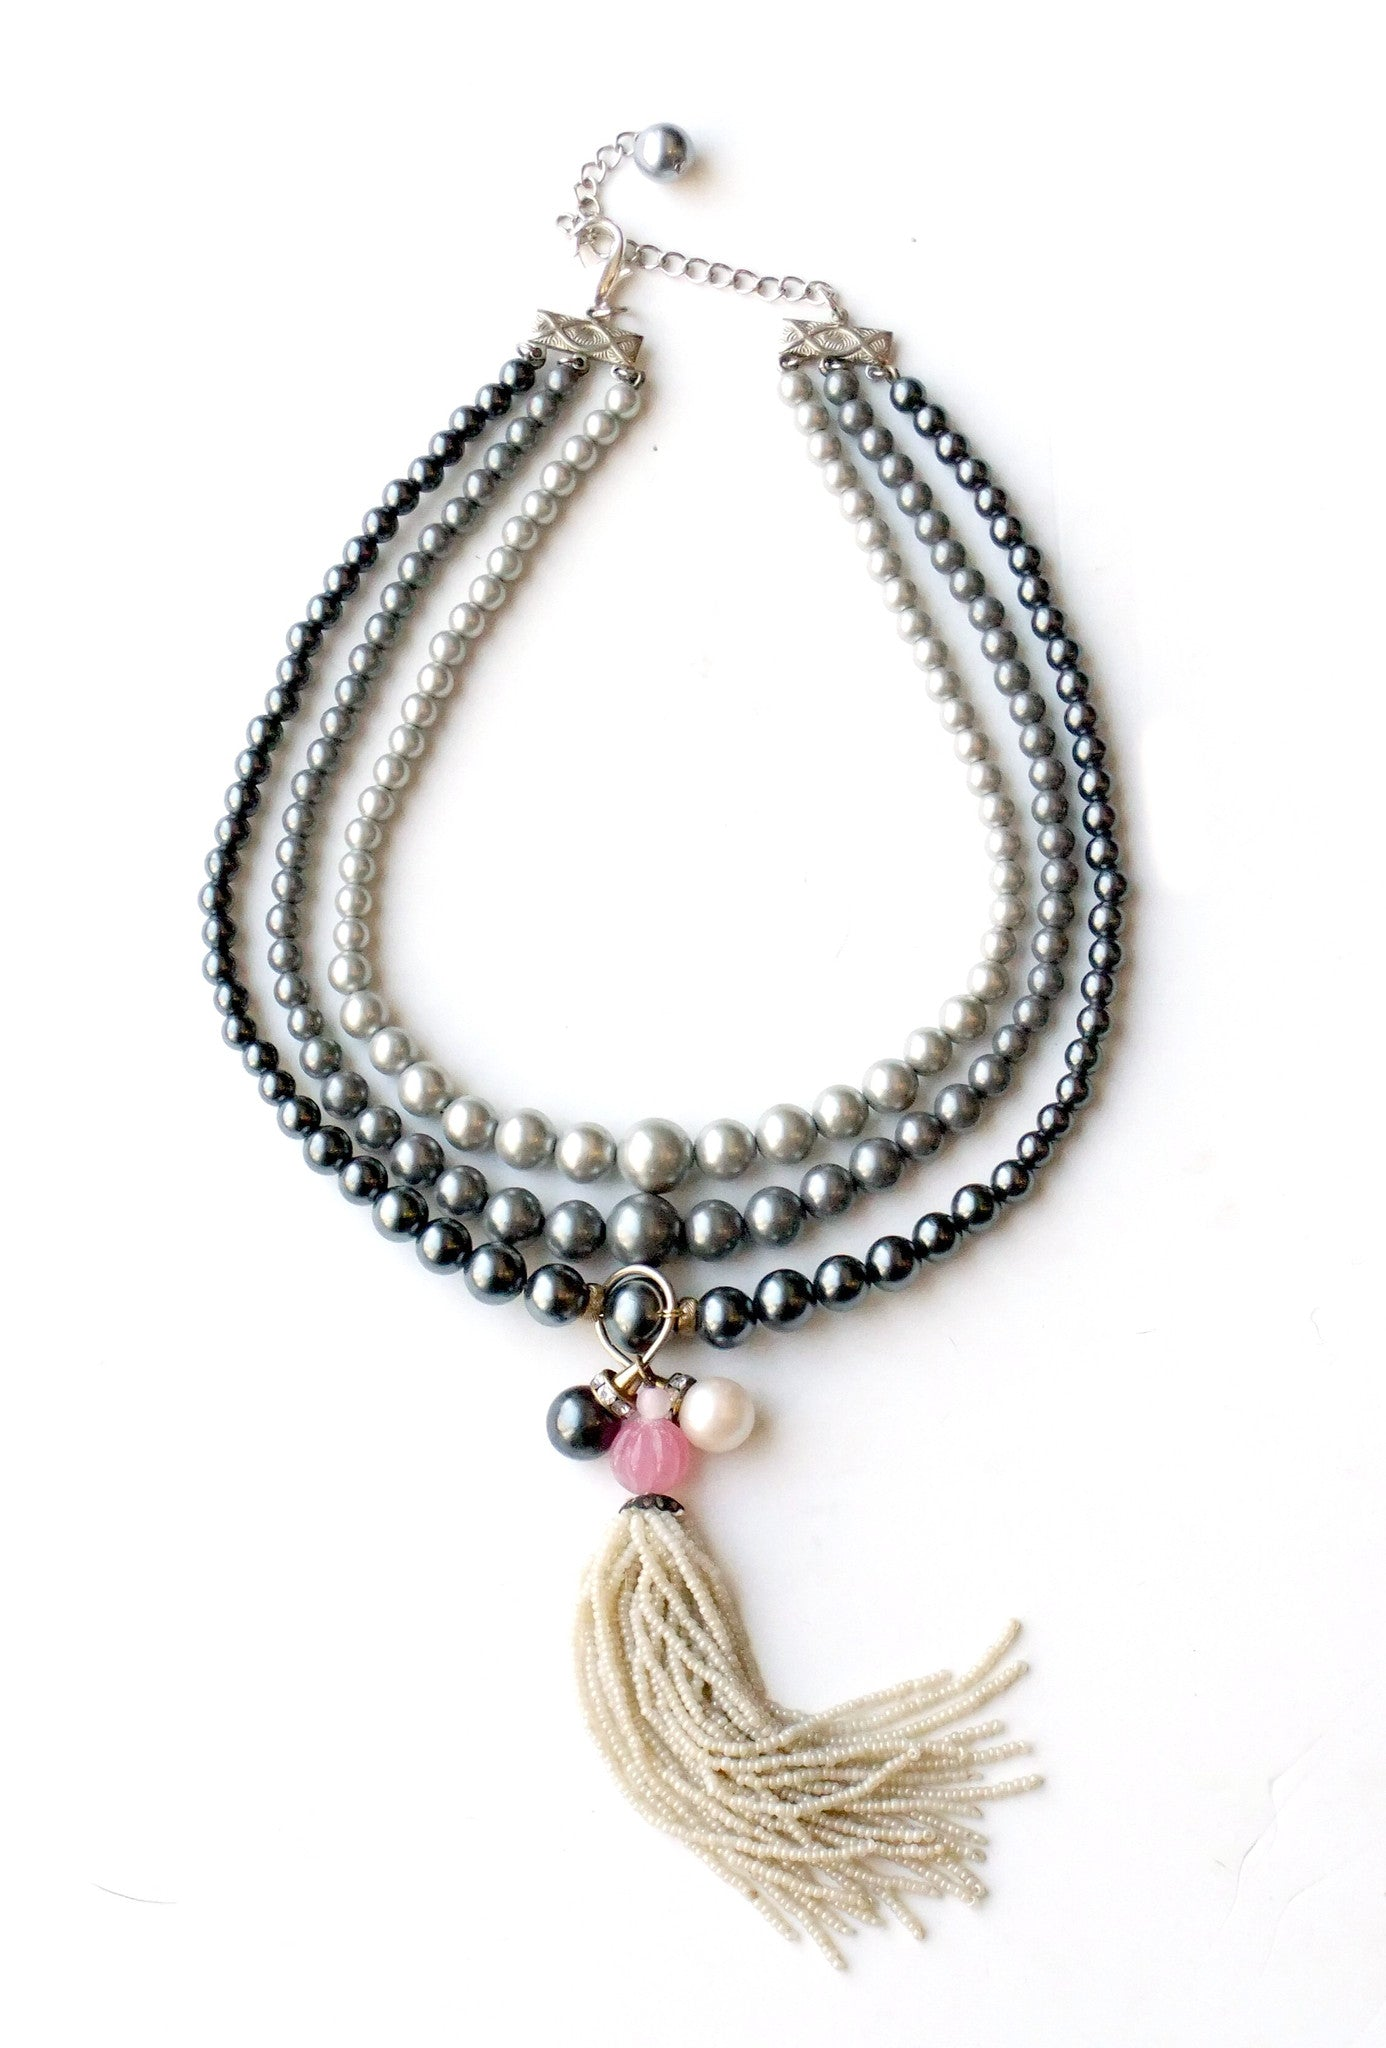 Knotted Pearl with 1910s Tassel